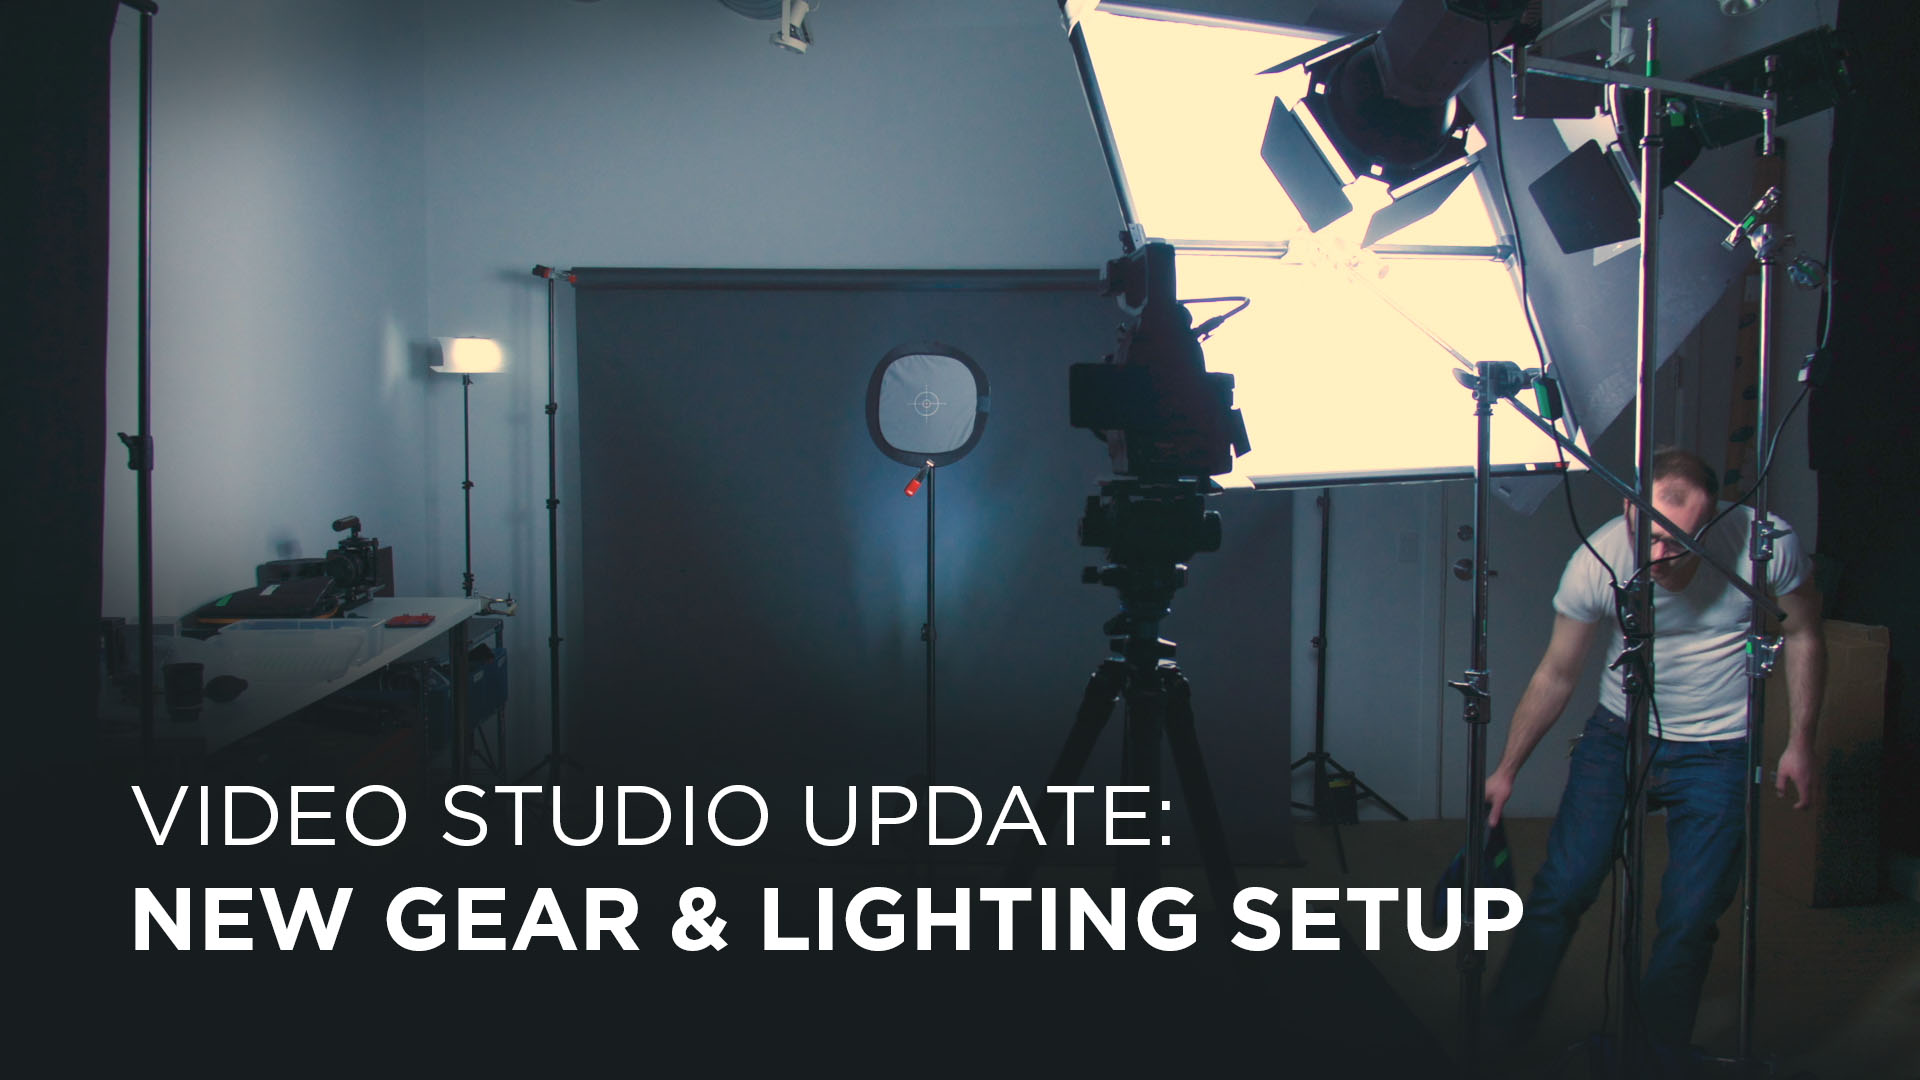 The Studio Part 4: New Studio Lighting and Setup